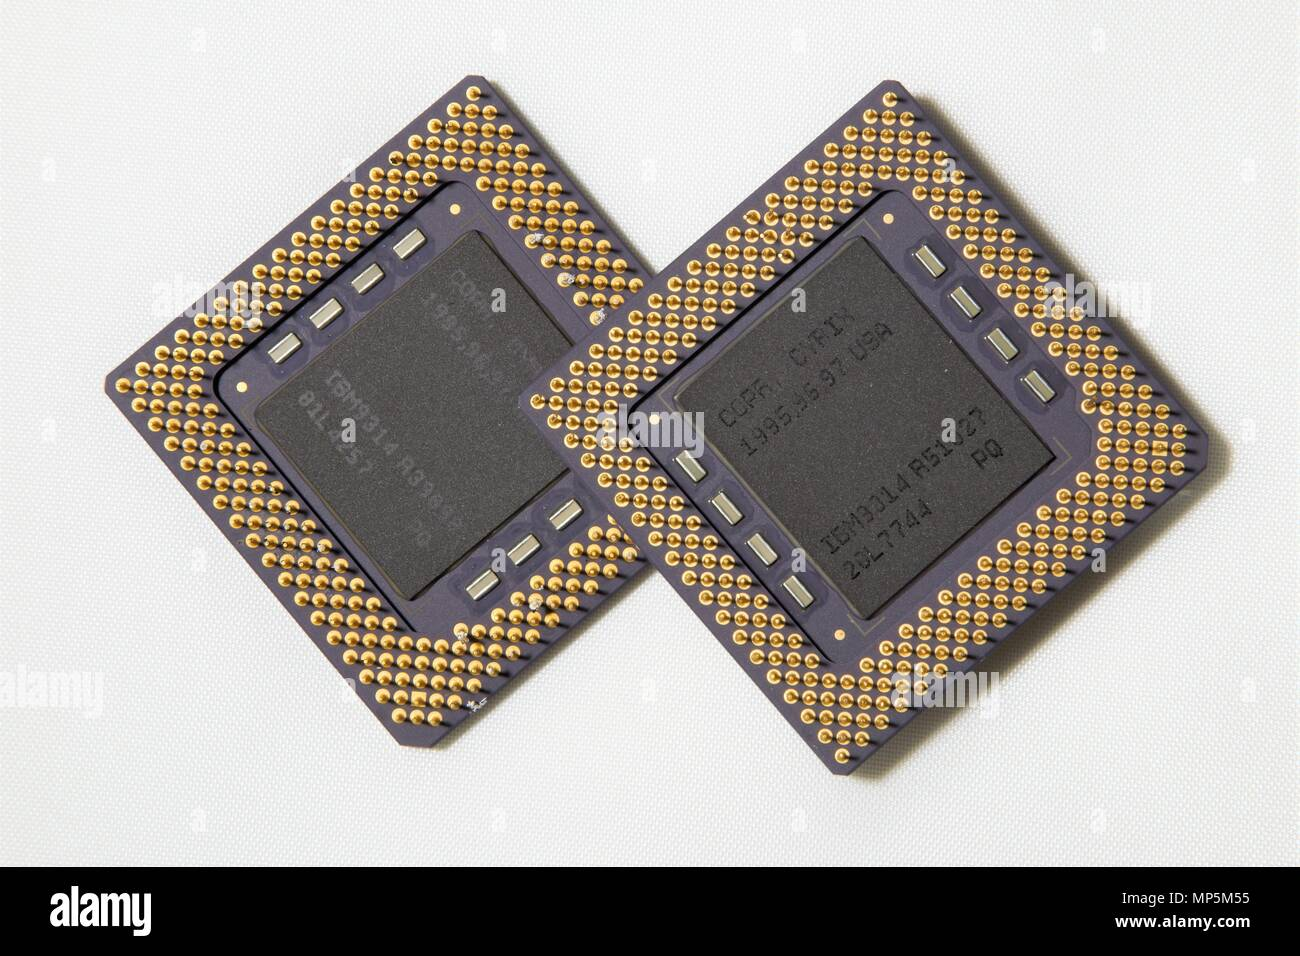 A computer processor on a white background, Bottom view from the pins side - Stock Image